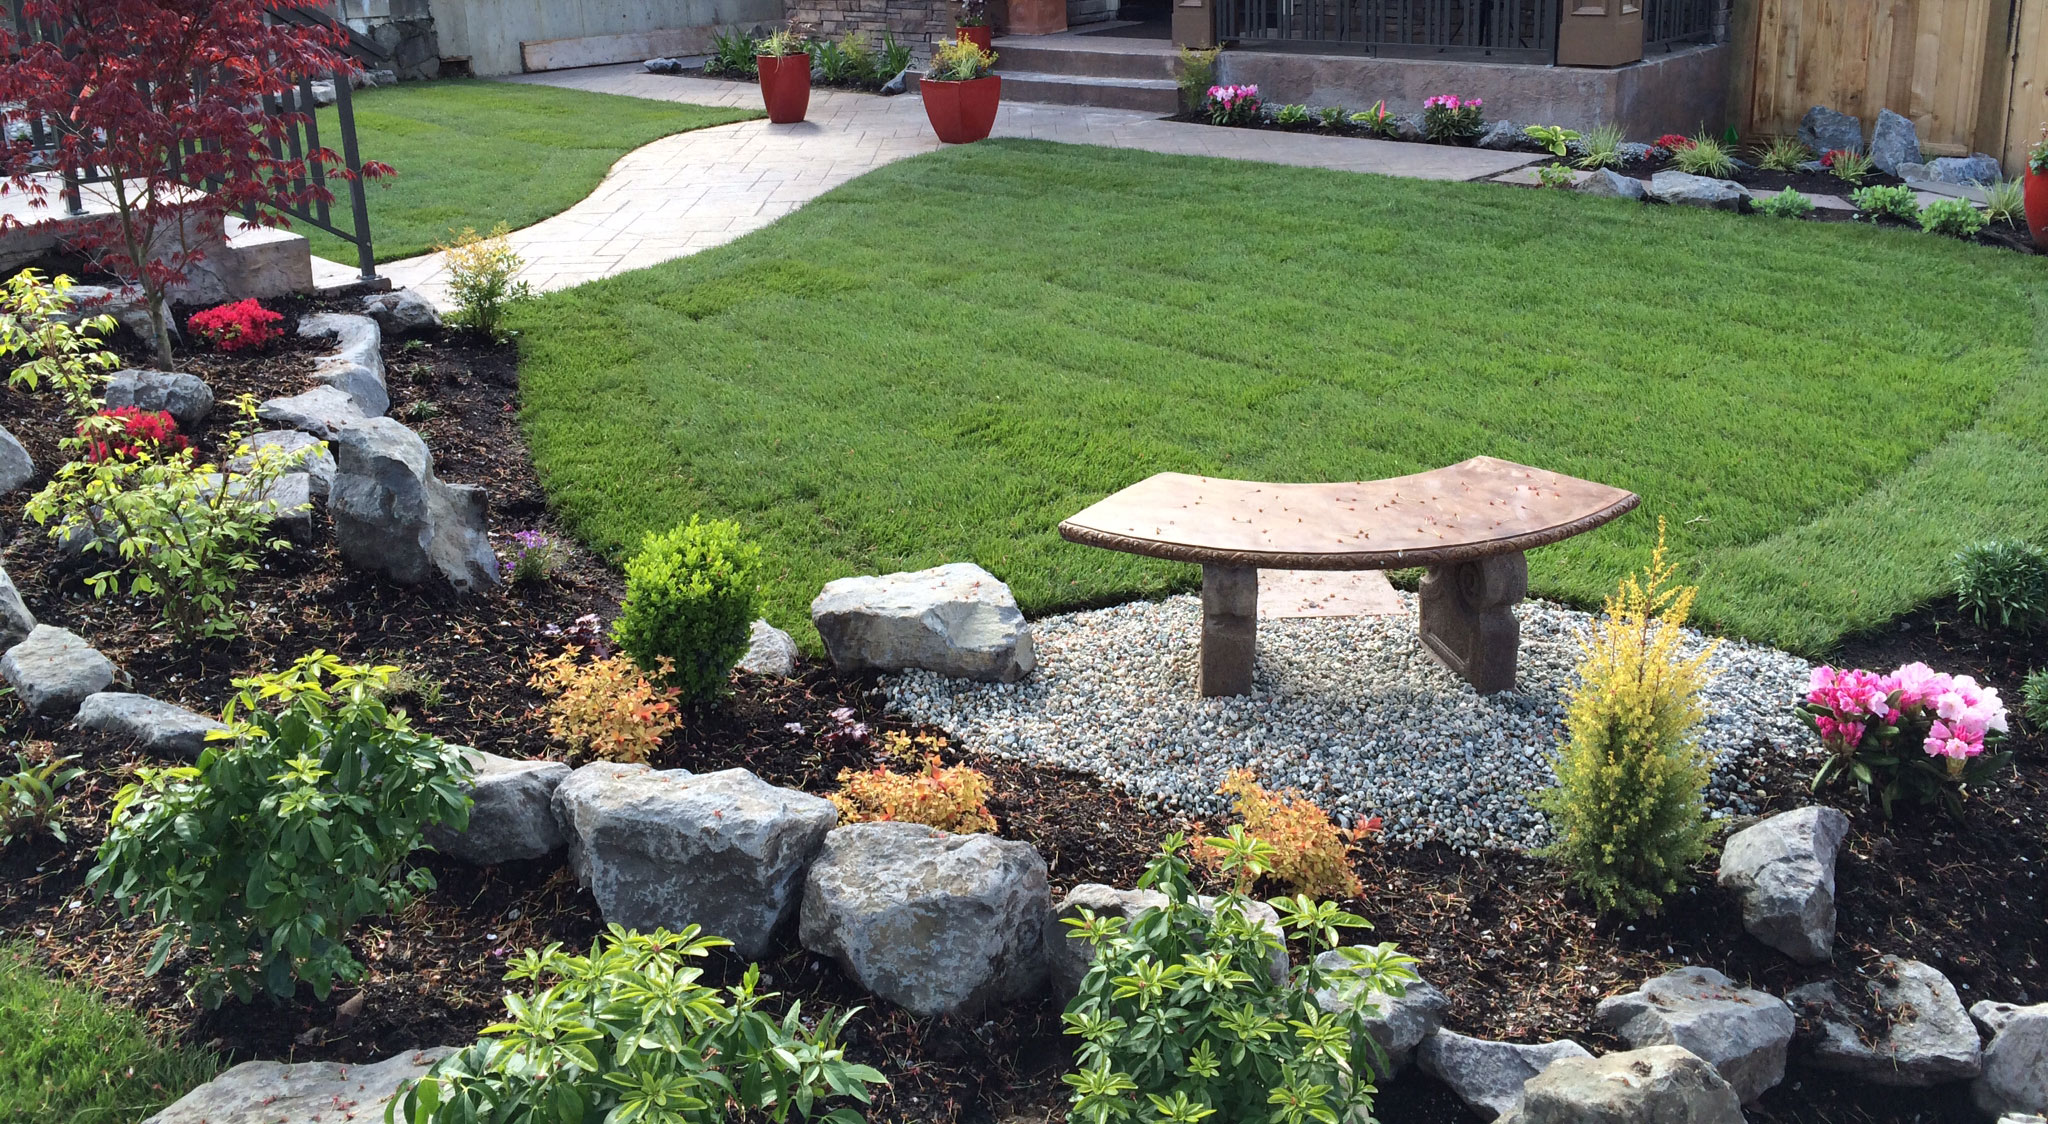 Landscape design james kelly landscape for Garden design landscaping company